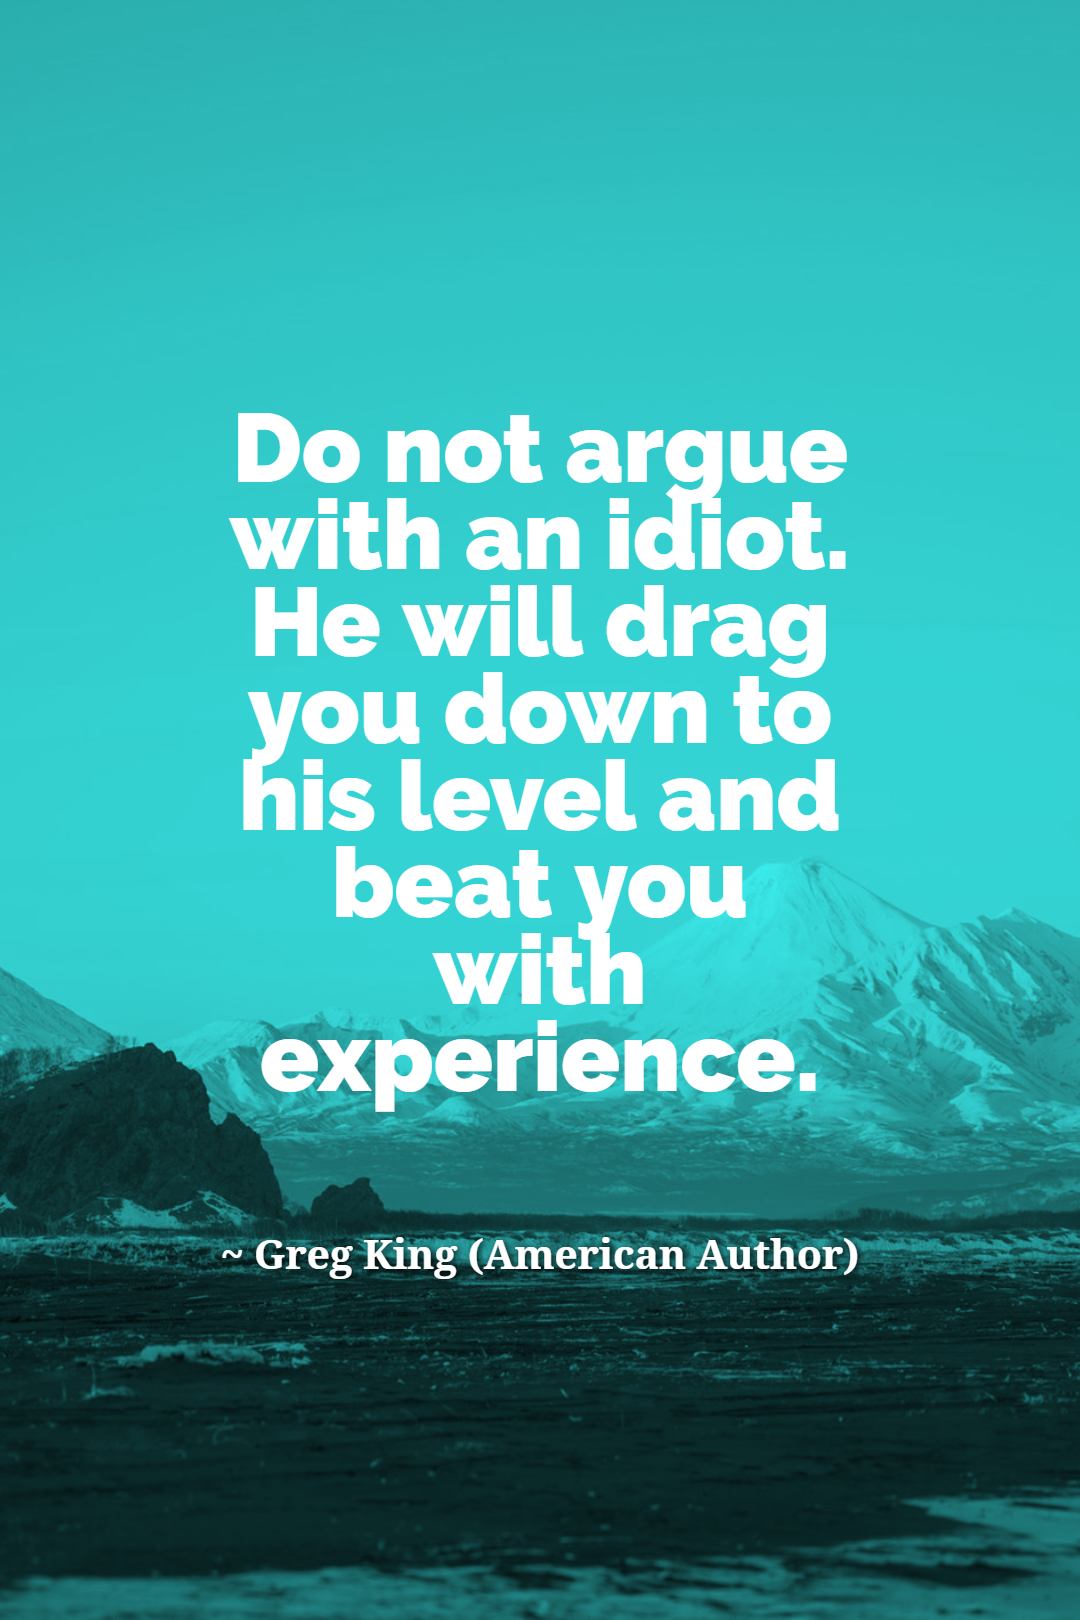 Don't argue with idiots because they will drag you down to their level and then beat you with experience. —Greg King [1080×1620]